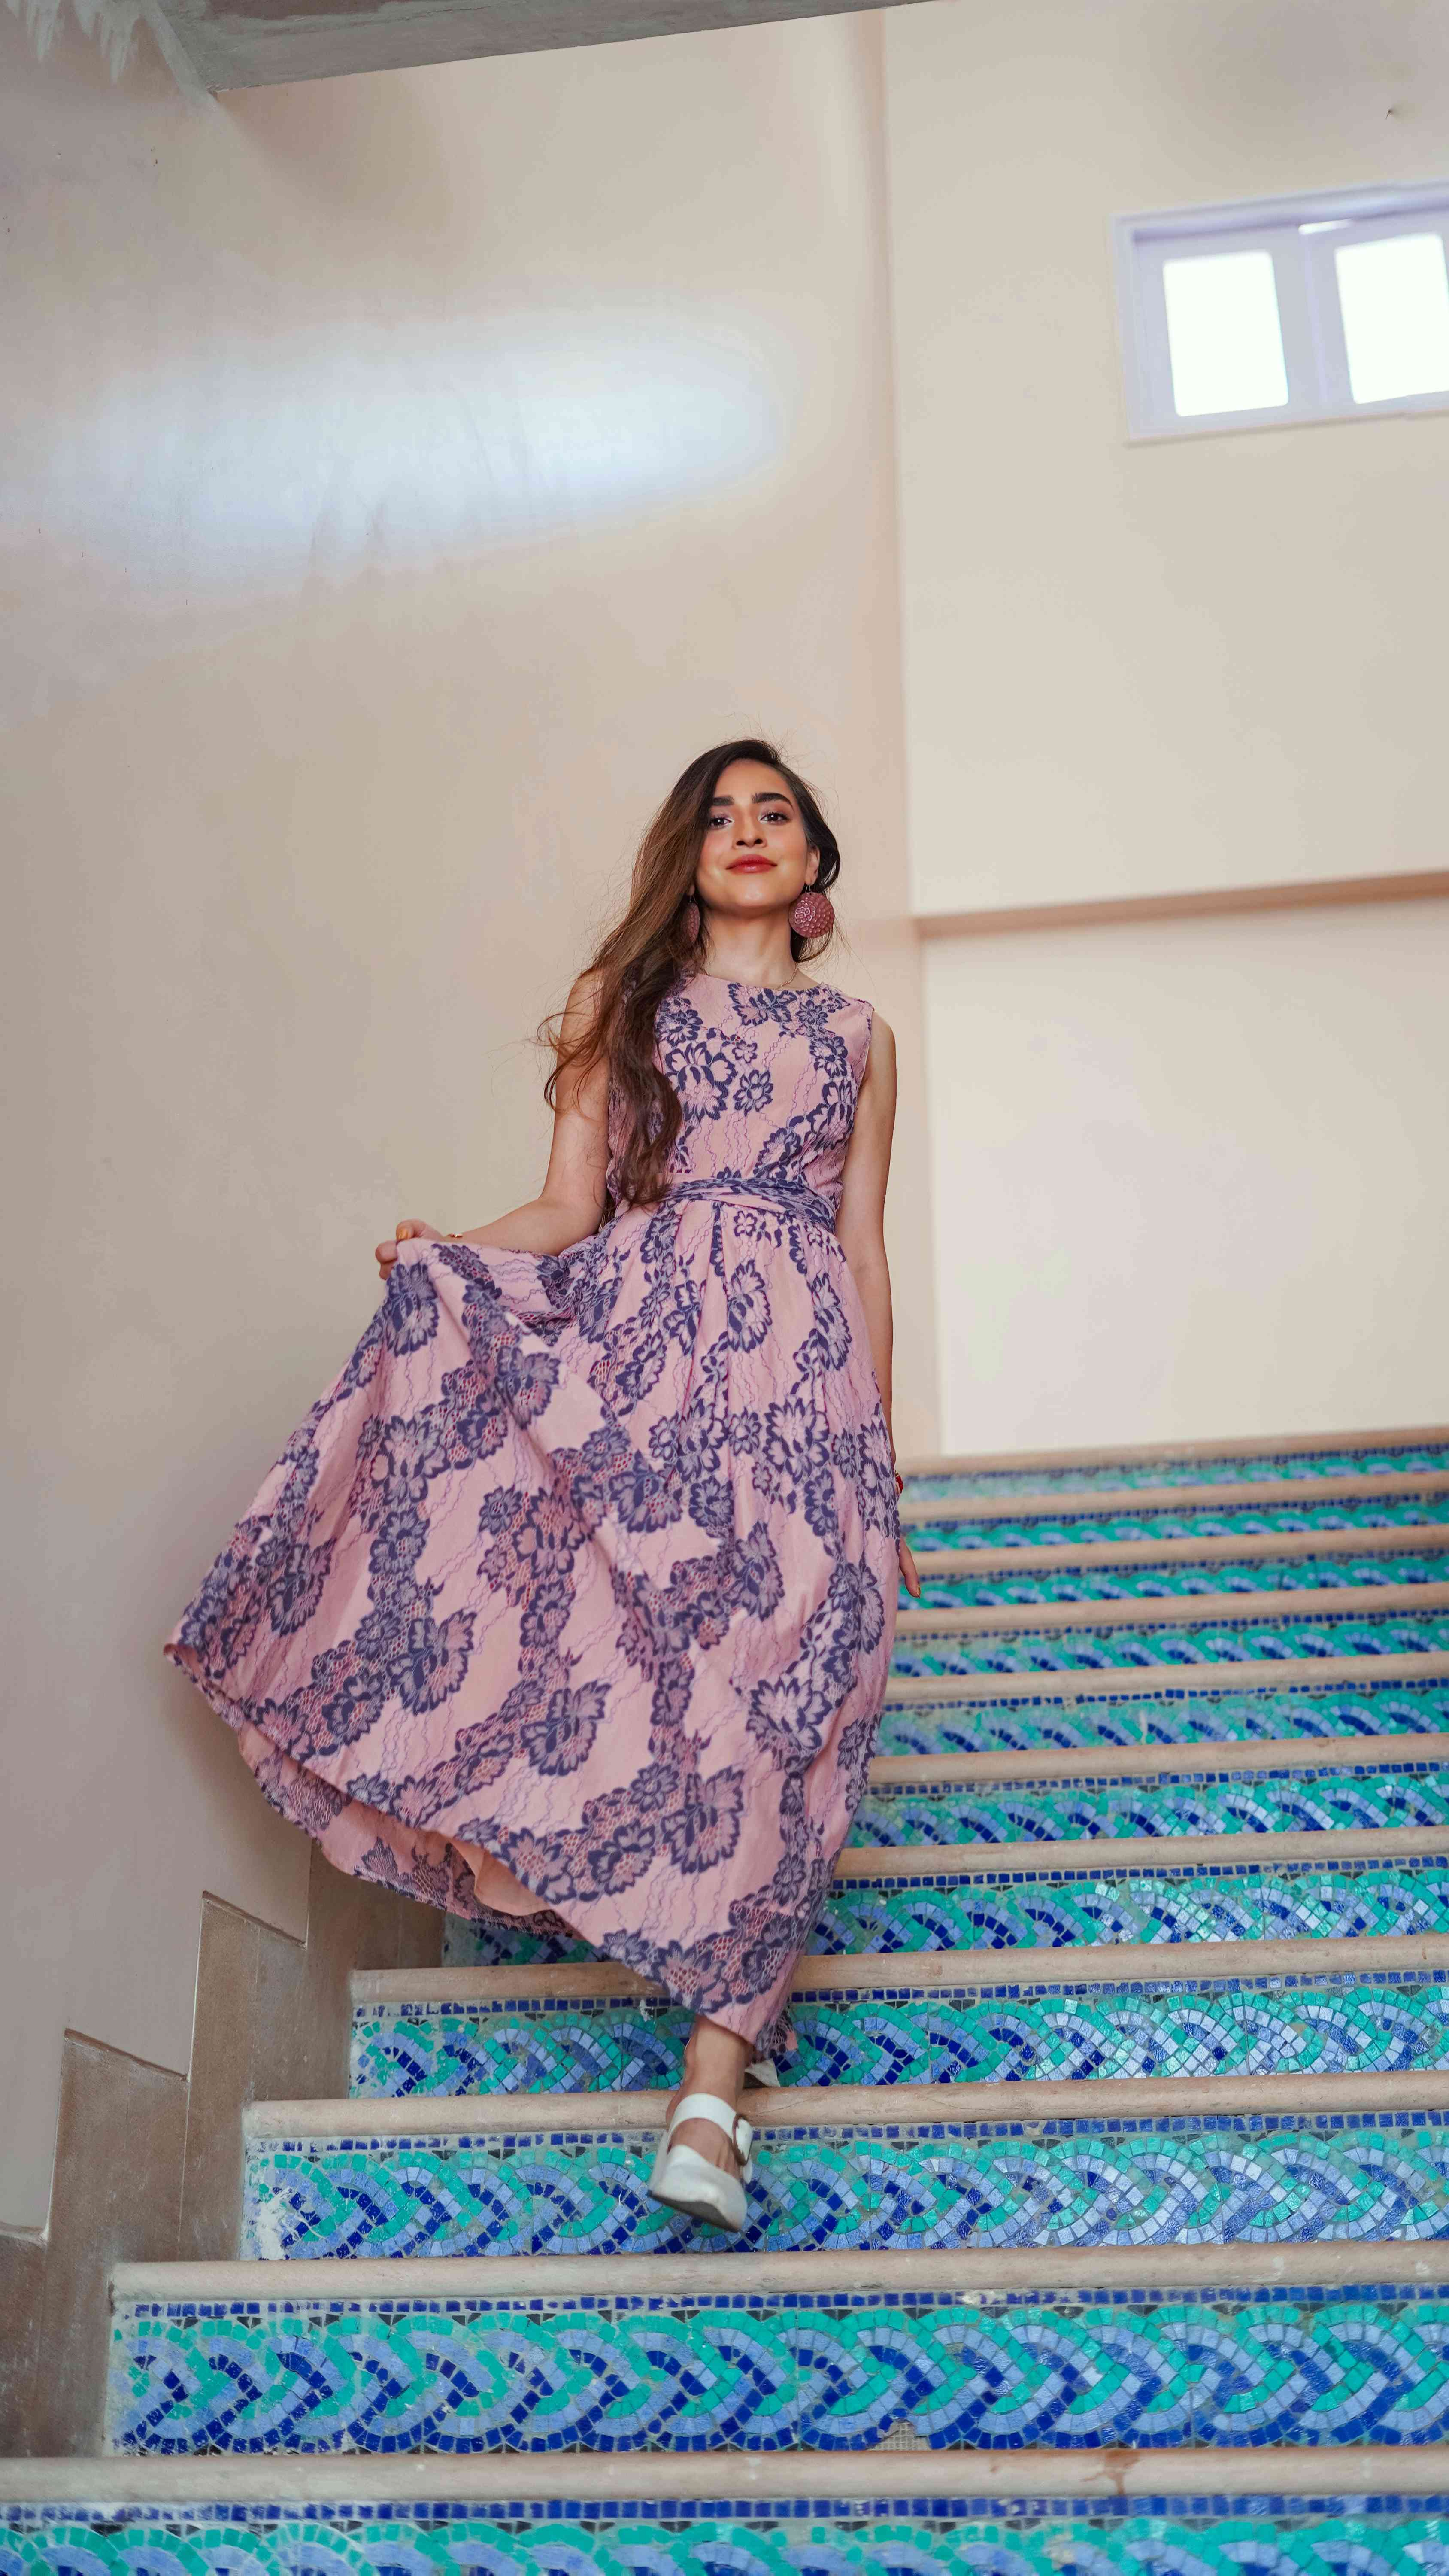 pink floral lace maxi dress walking down blue tile stairs